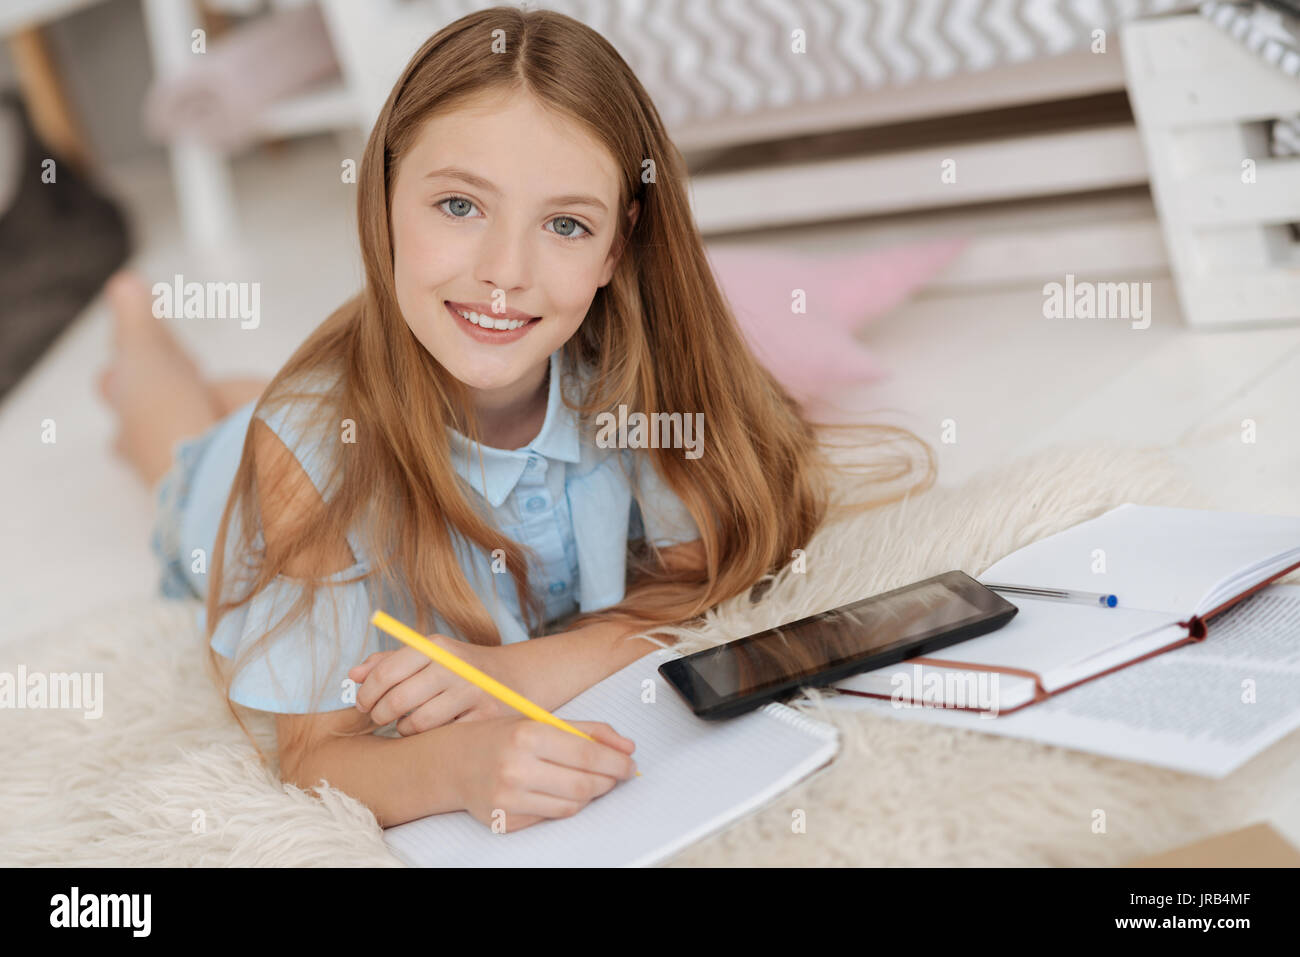 Girl of unearthly beauty smiling into camera - Stock Image